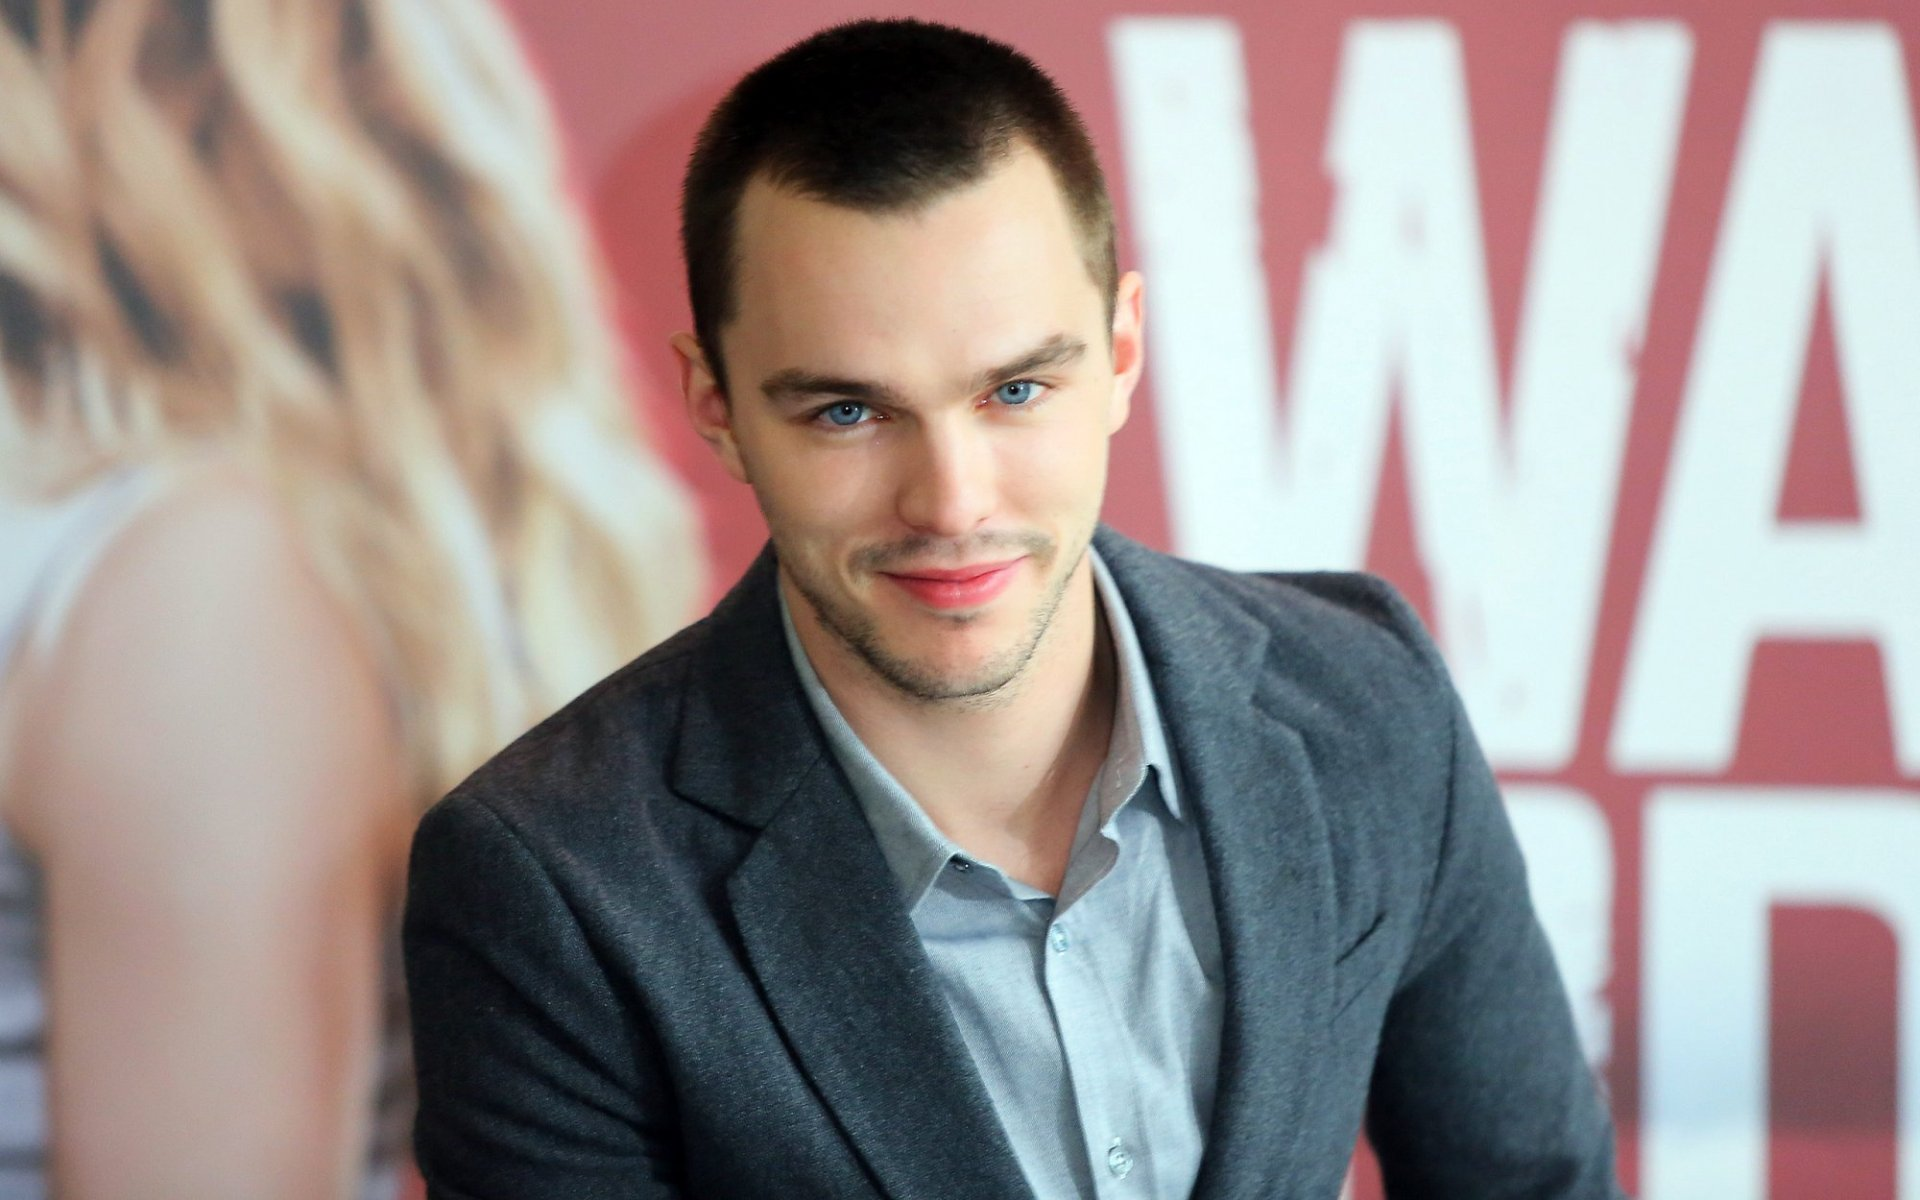 nicholas hoult wallpaper background - photo #22